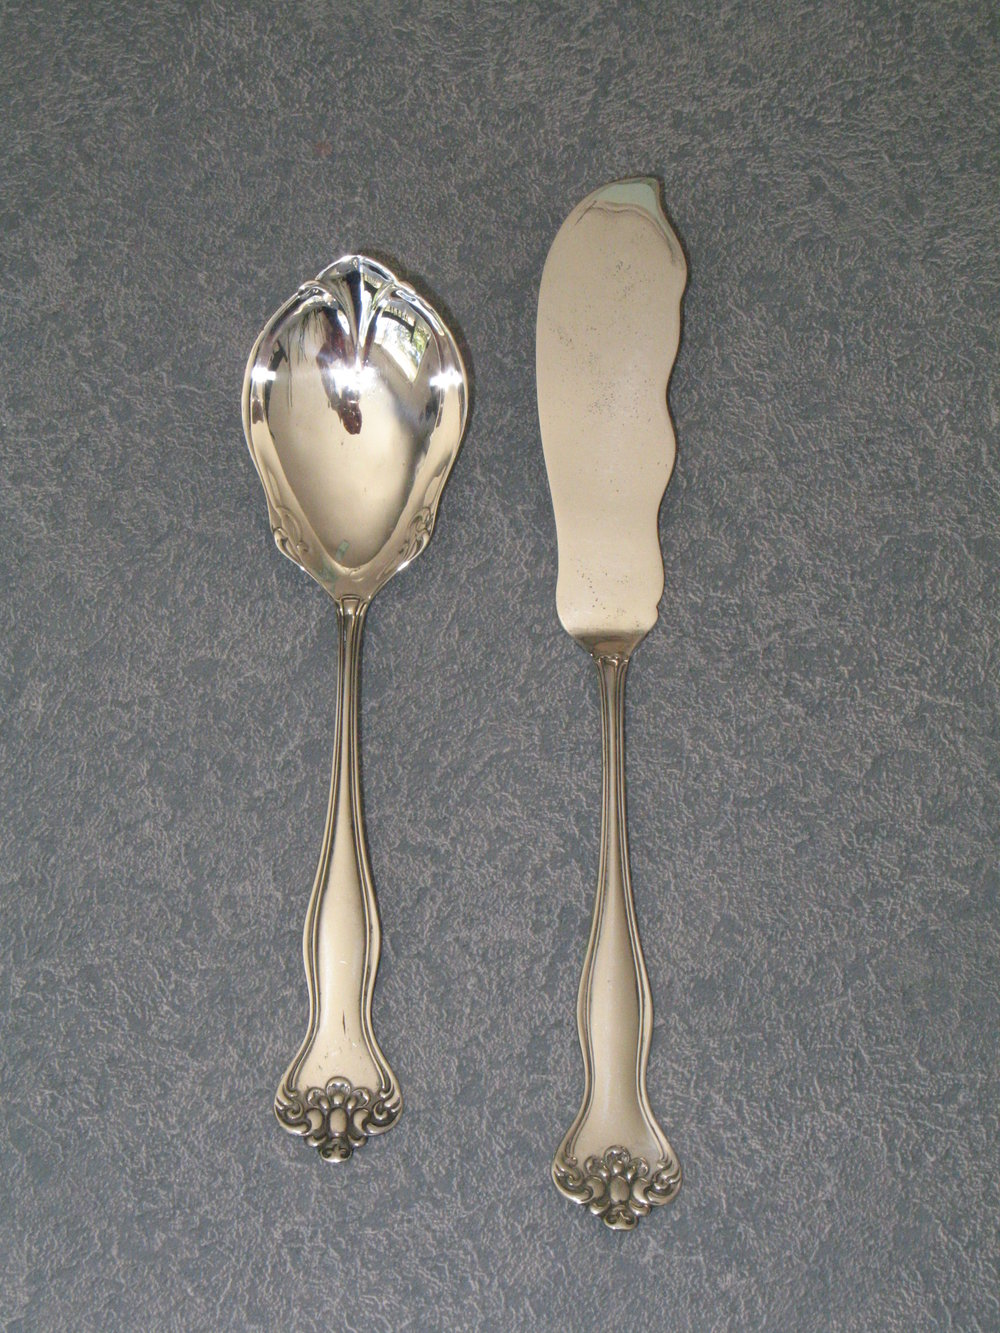 Sterling-silver-jelly-spoon-butter-knife .JPG